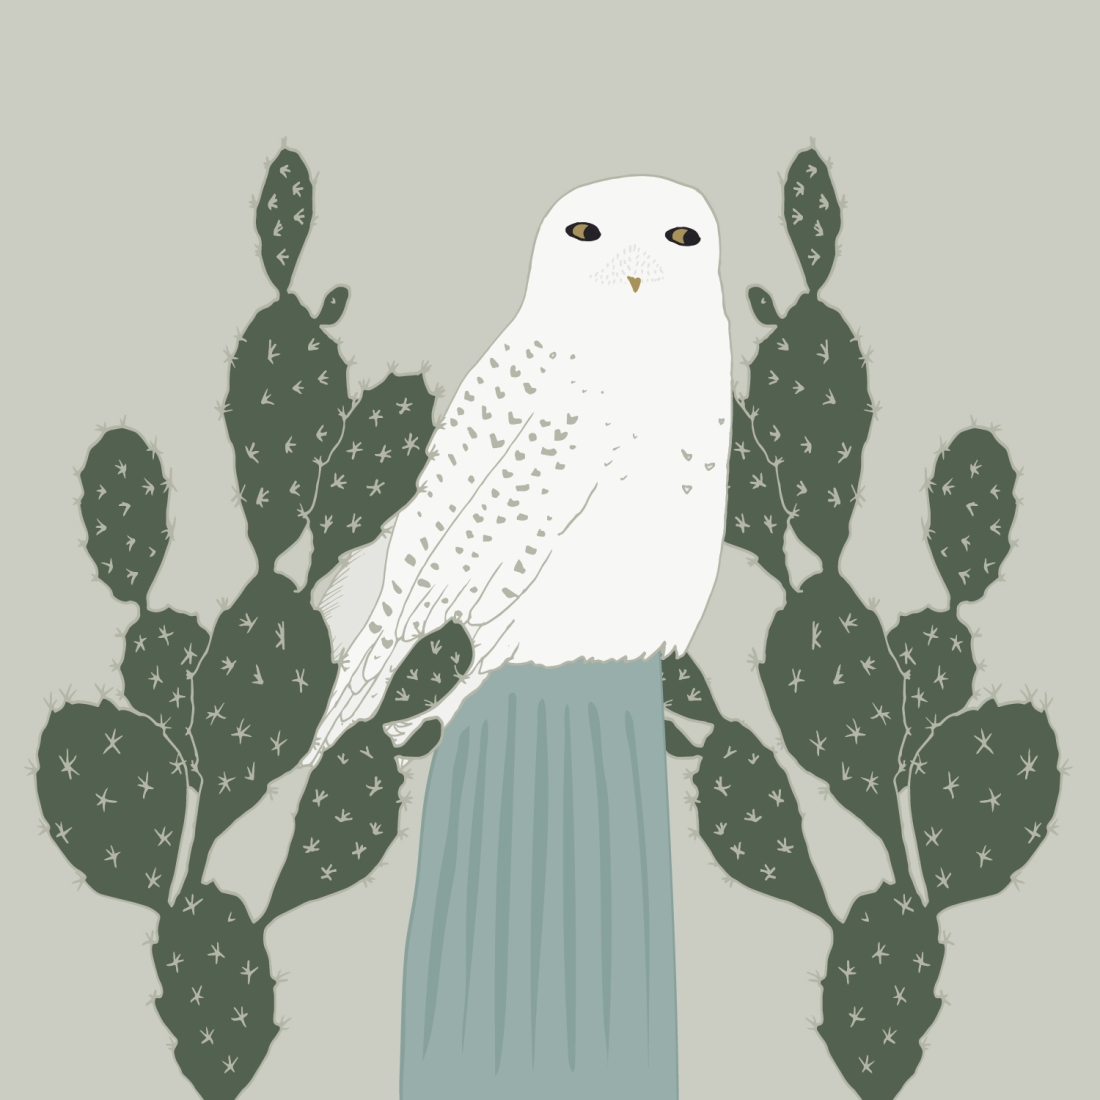 Snowy Owl and Cactus by Brina Schenk